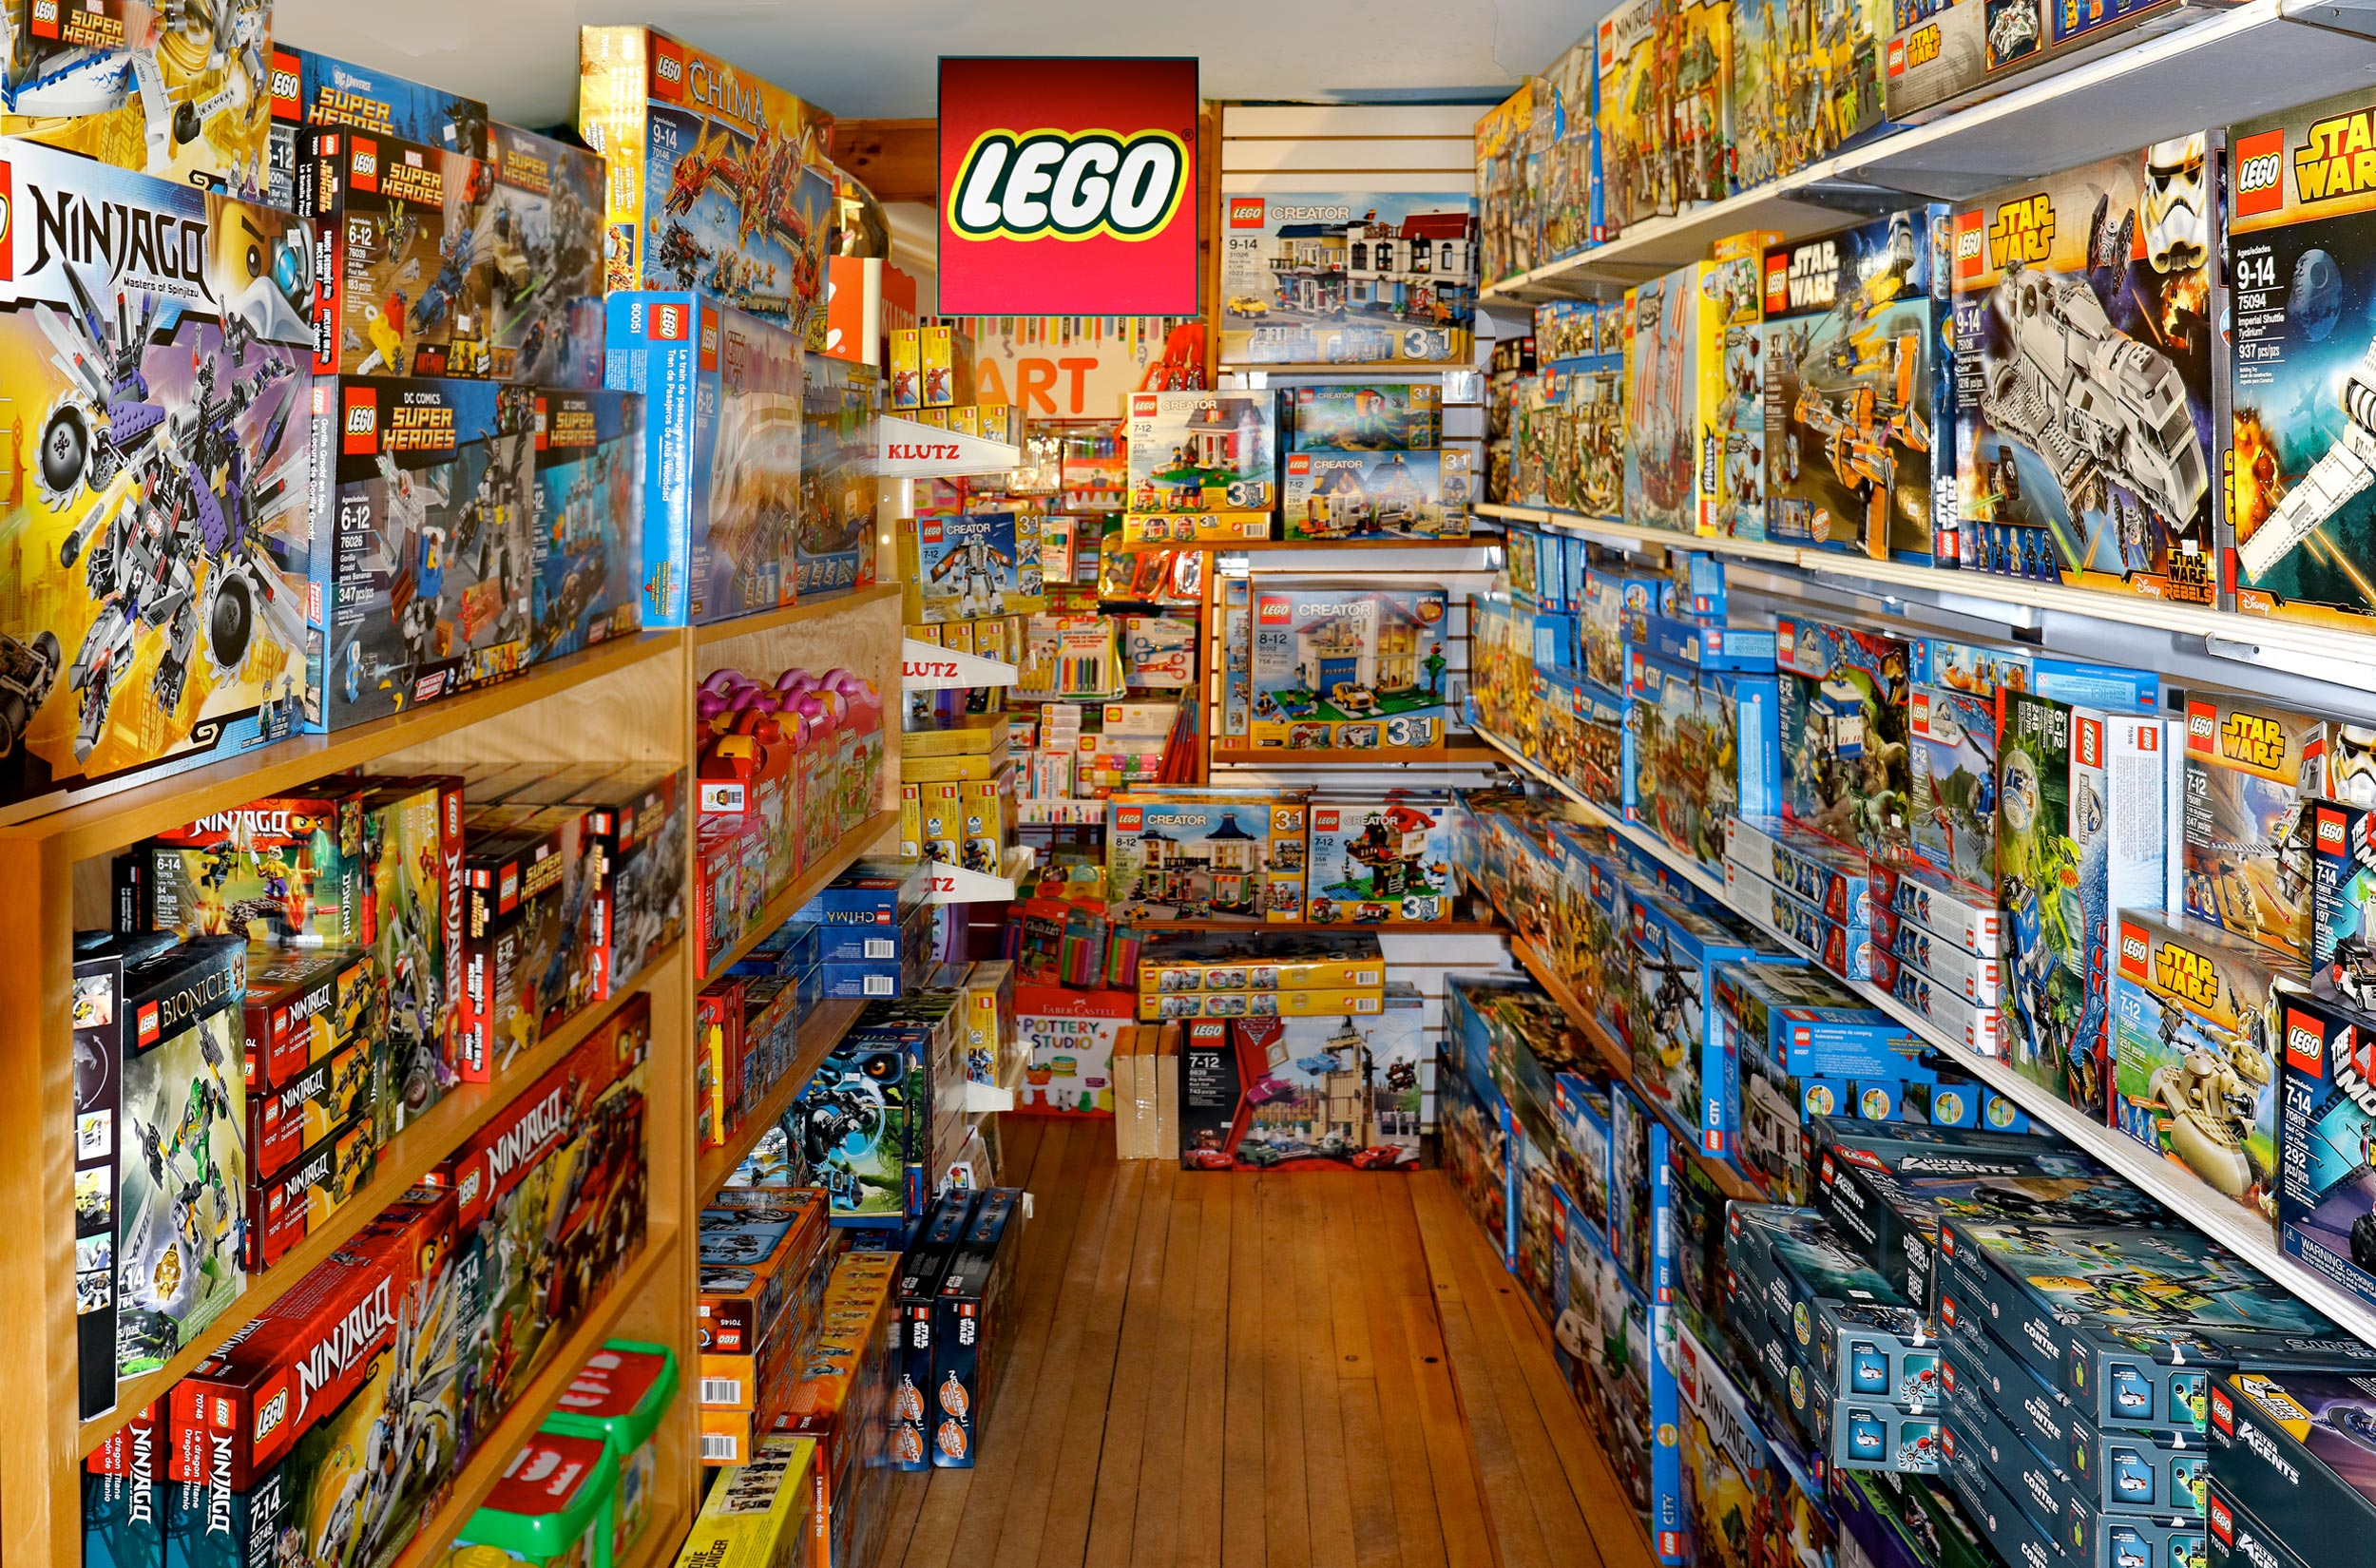 The-Red-Balloon-Toy-Shop-Orleans-Legos-Cape-Cod.jpg